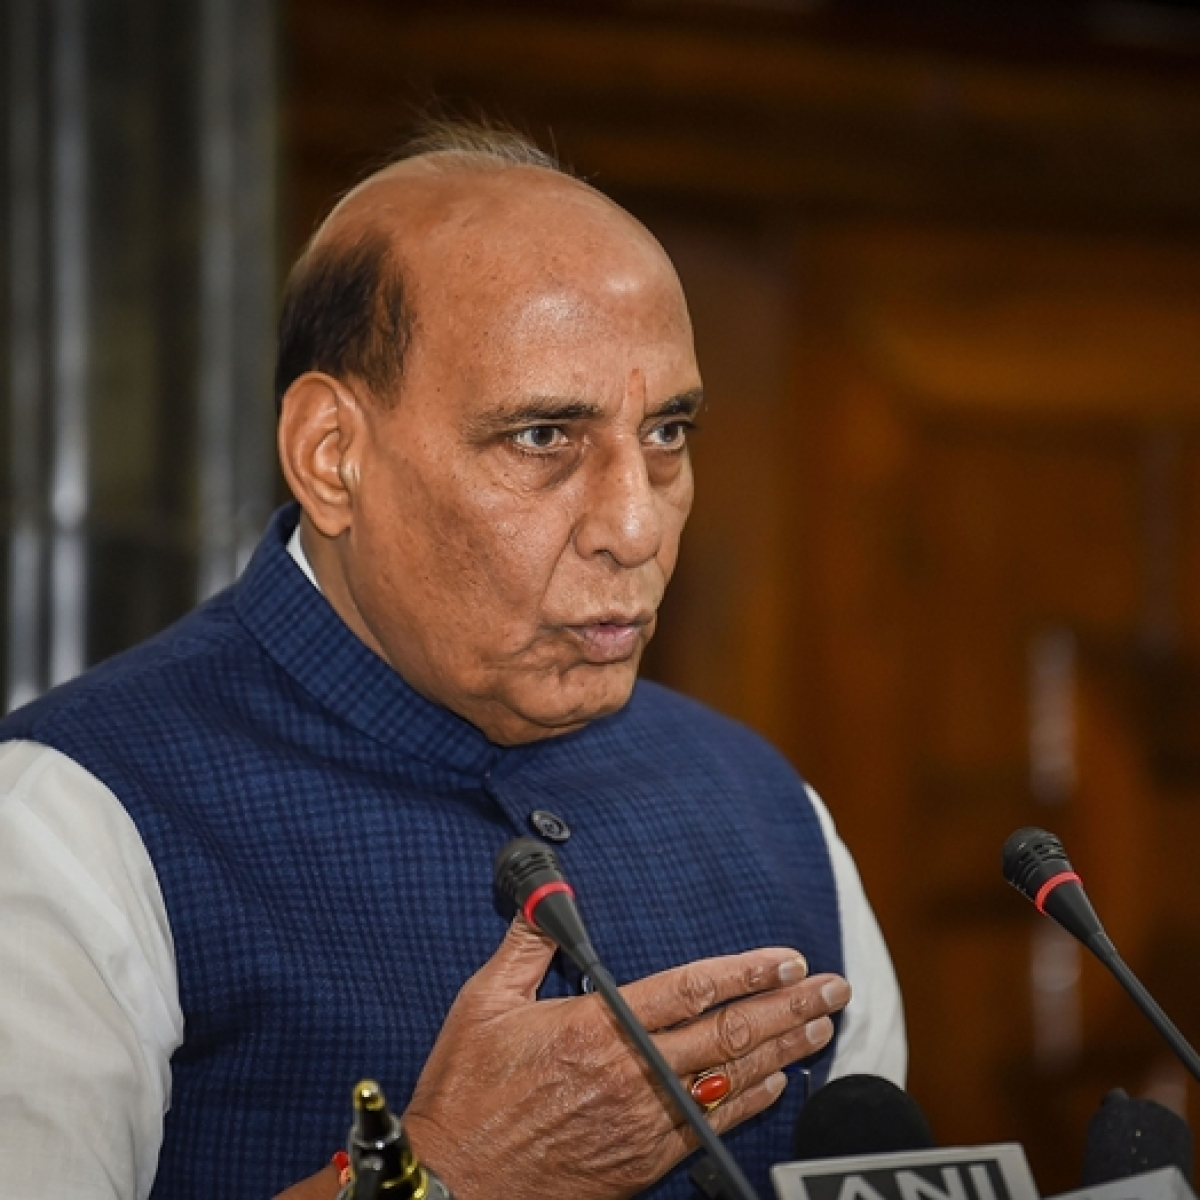 'Rajnath Singh has spoken from personal experience': Nawab Malik hits out at the Defence Minister for comparing Maha's governance to a circus